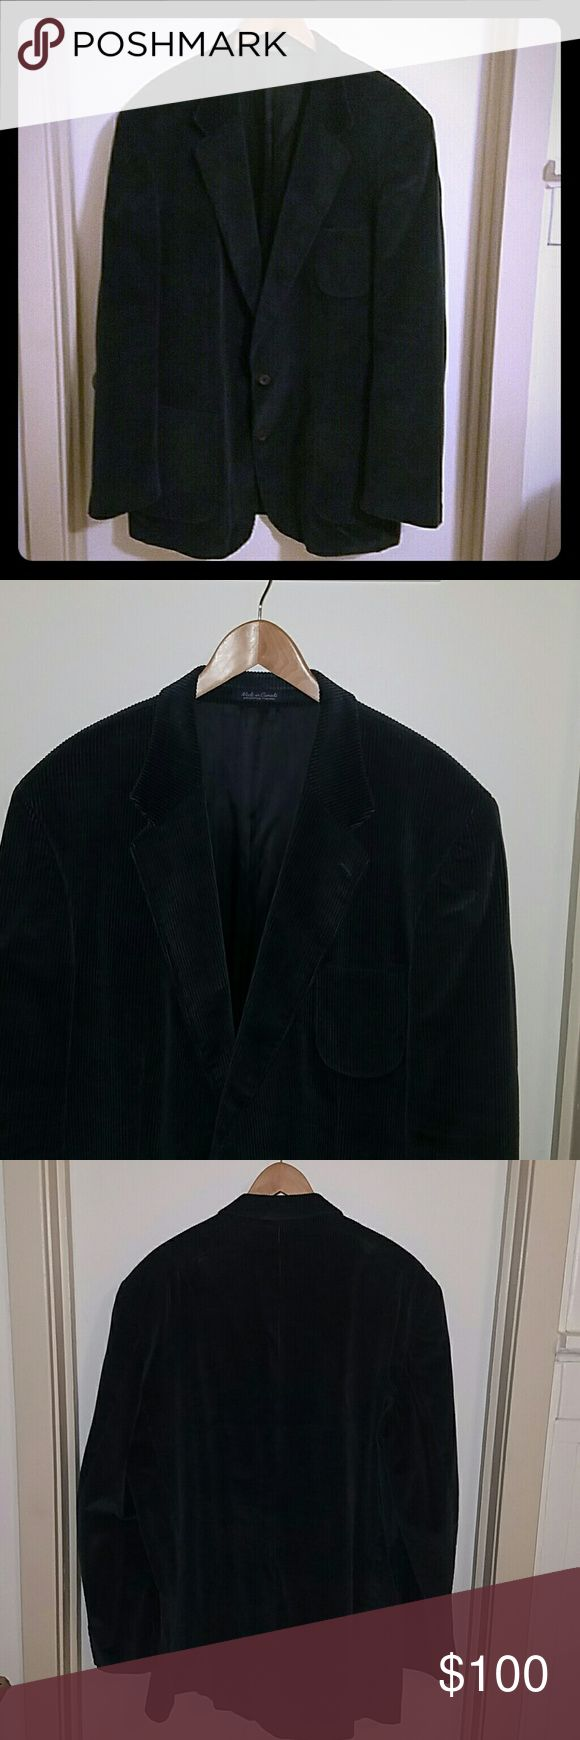 • M € N S•₩ € A R • {Rochester Special Man} Blazer Men's Big & Tall Size XXL || Navy Blue Corduroy Double Breasted Blazer || Satin Lining || NWOT || Open to Offers Rochester Special Man  Jackets & Coats Trench Coats